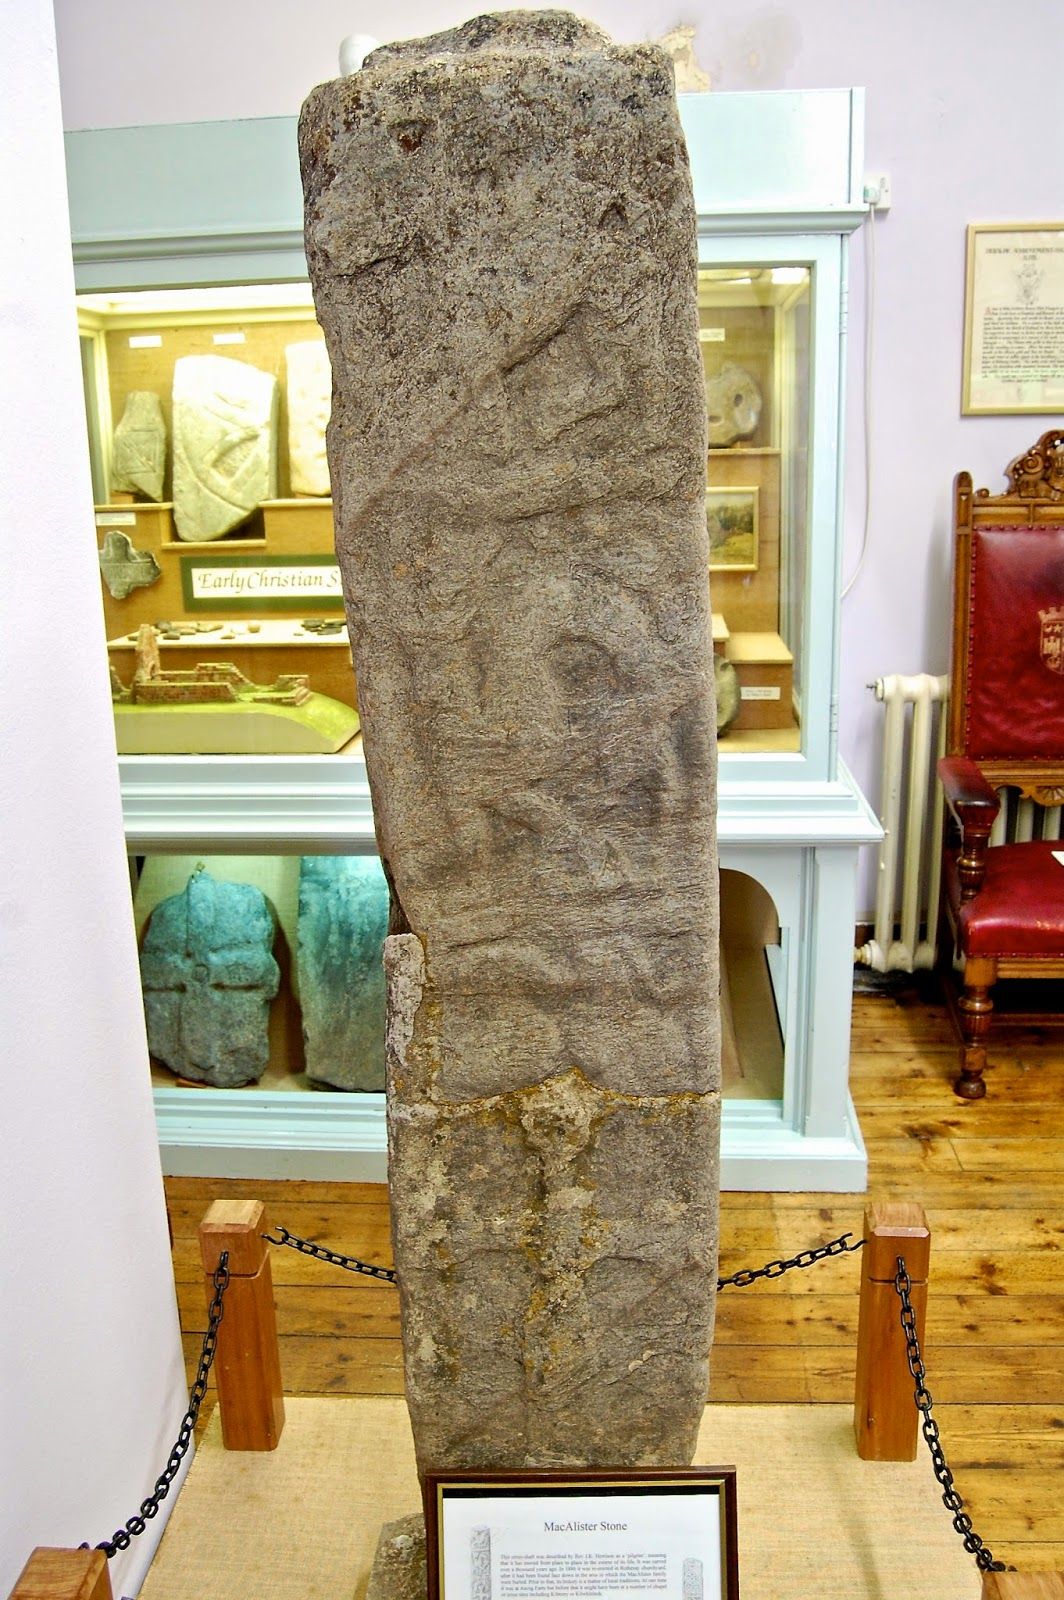 MacAlister stone, the carved shaft of a Celtic cross